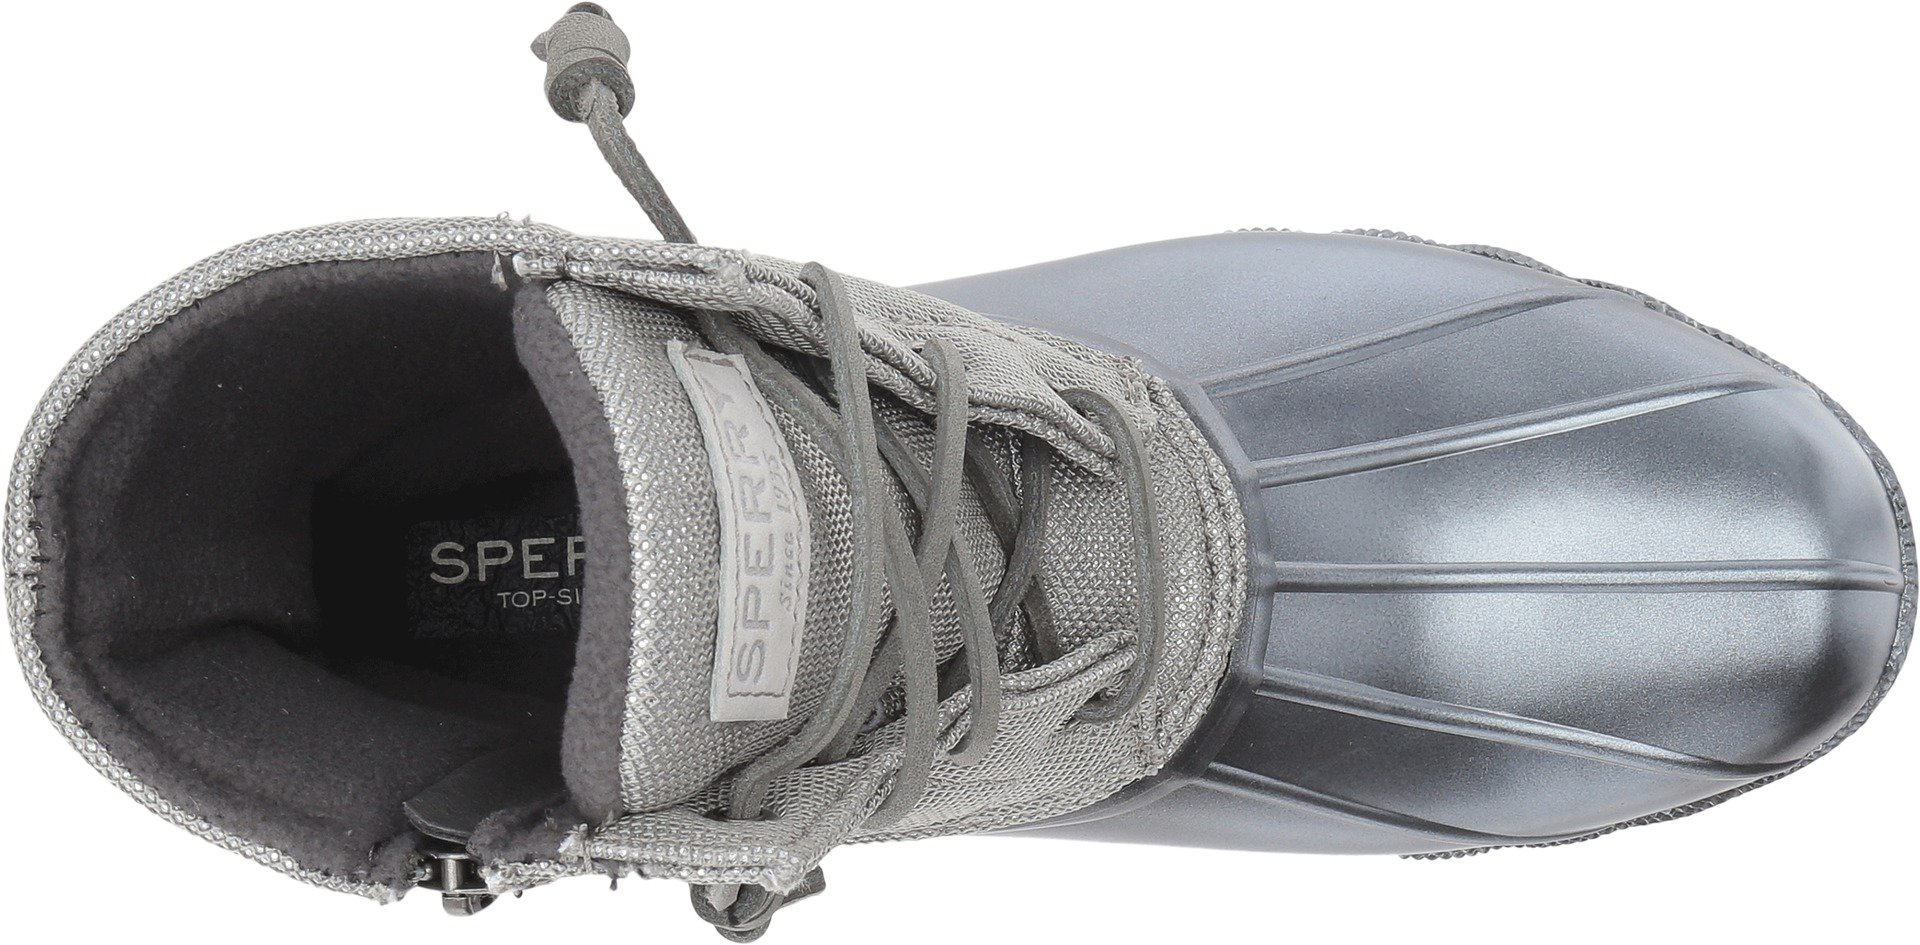 Sperry Top-Sider Women's Saltwater Pearlized Rain Boot, Gunmetal, 9.5 Medium US by Sperry Top-Sider (Image #2)